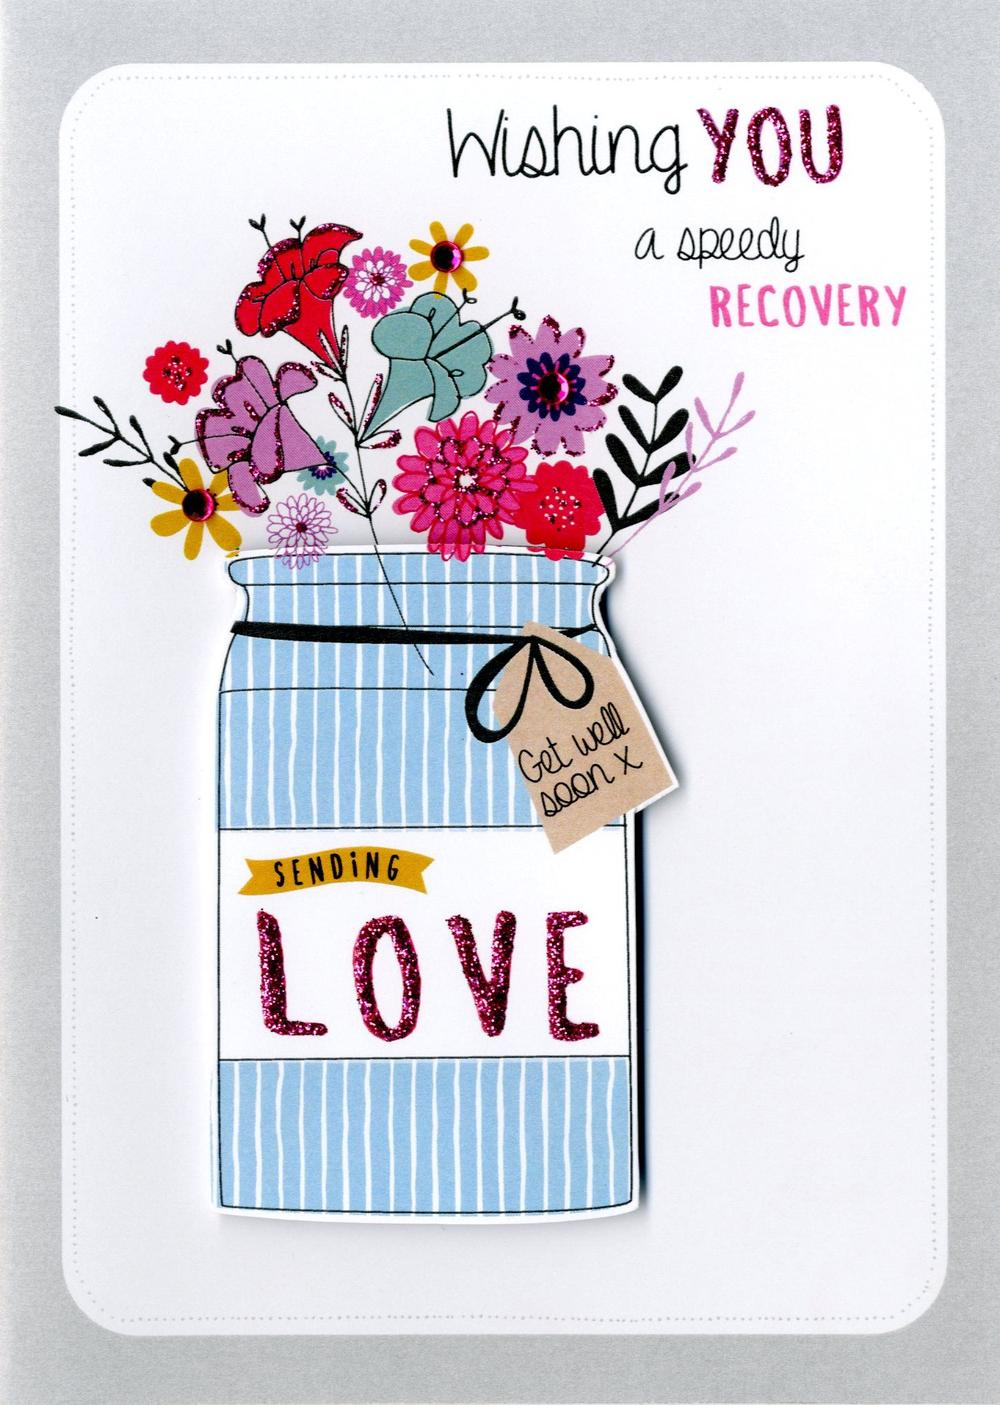 Chic Speedy Recovery Get Well Greeting Card Speedy Recovery Get Well Greeting Card Cards Love Kates Wishing You A Speedy Recovery Wishing You A Speedy Recovery Get Well Soon cards Wishing You A Speedy Recovery